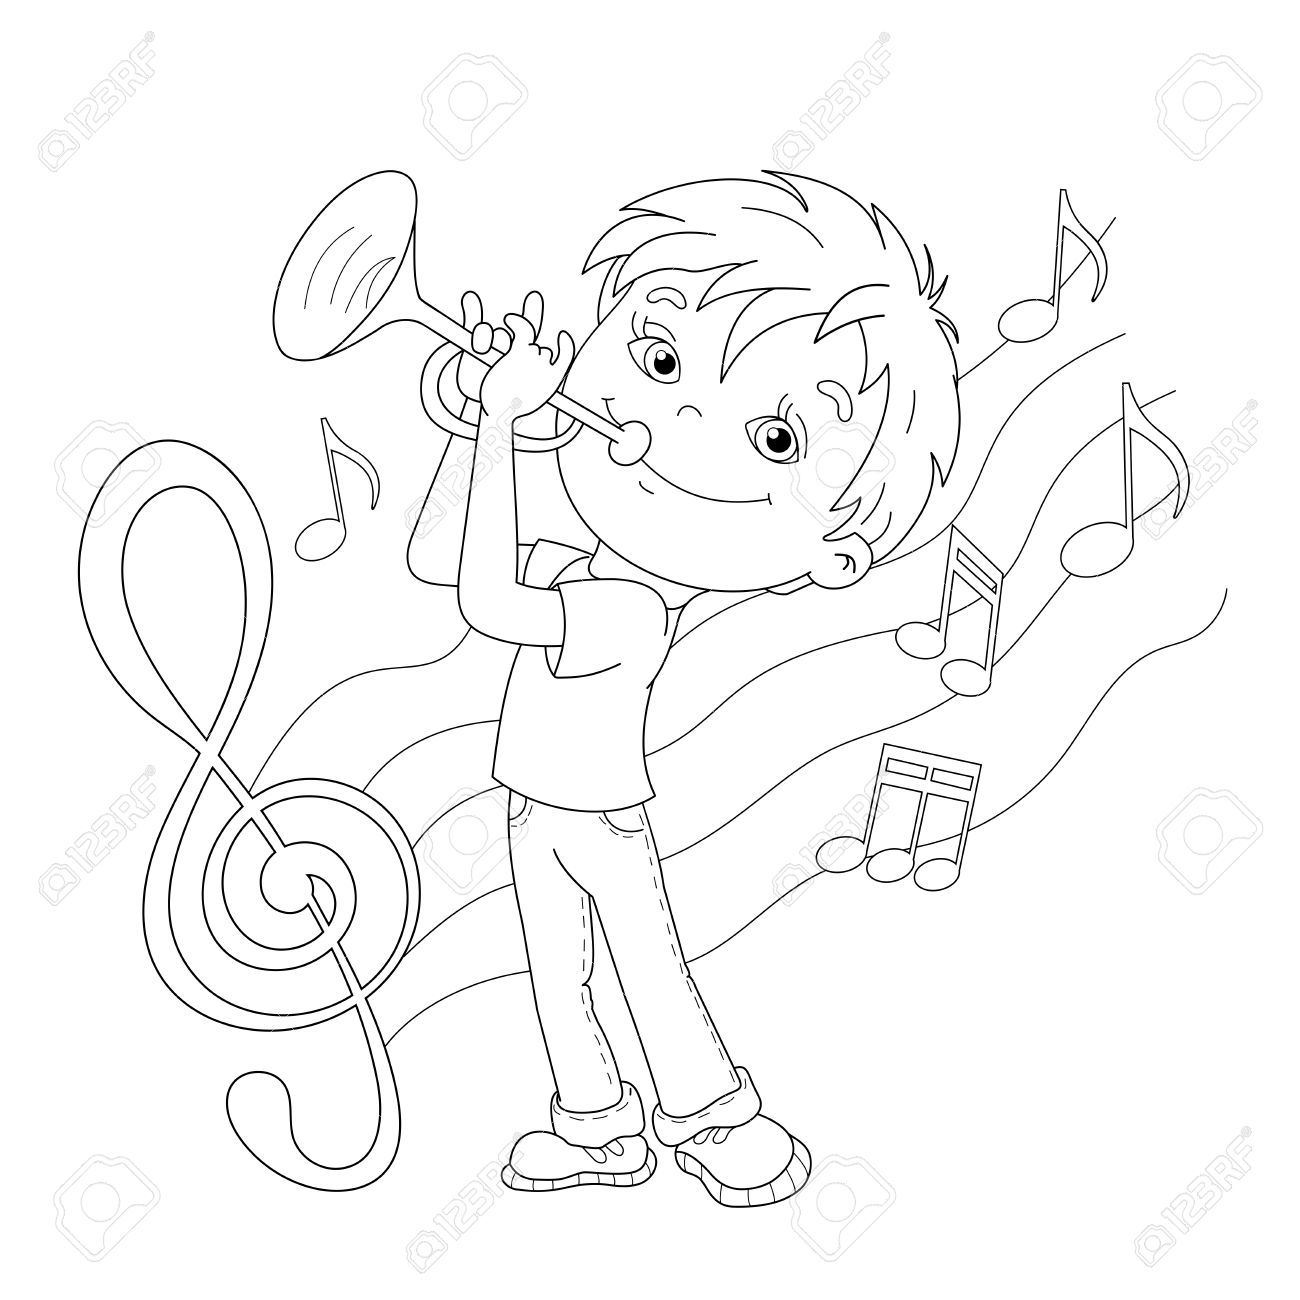 coloring page outline of cartoon boy playing the trumpet with